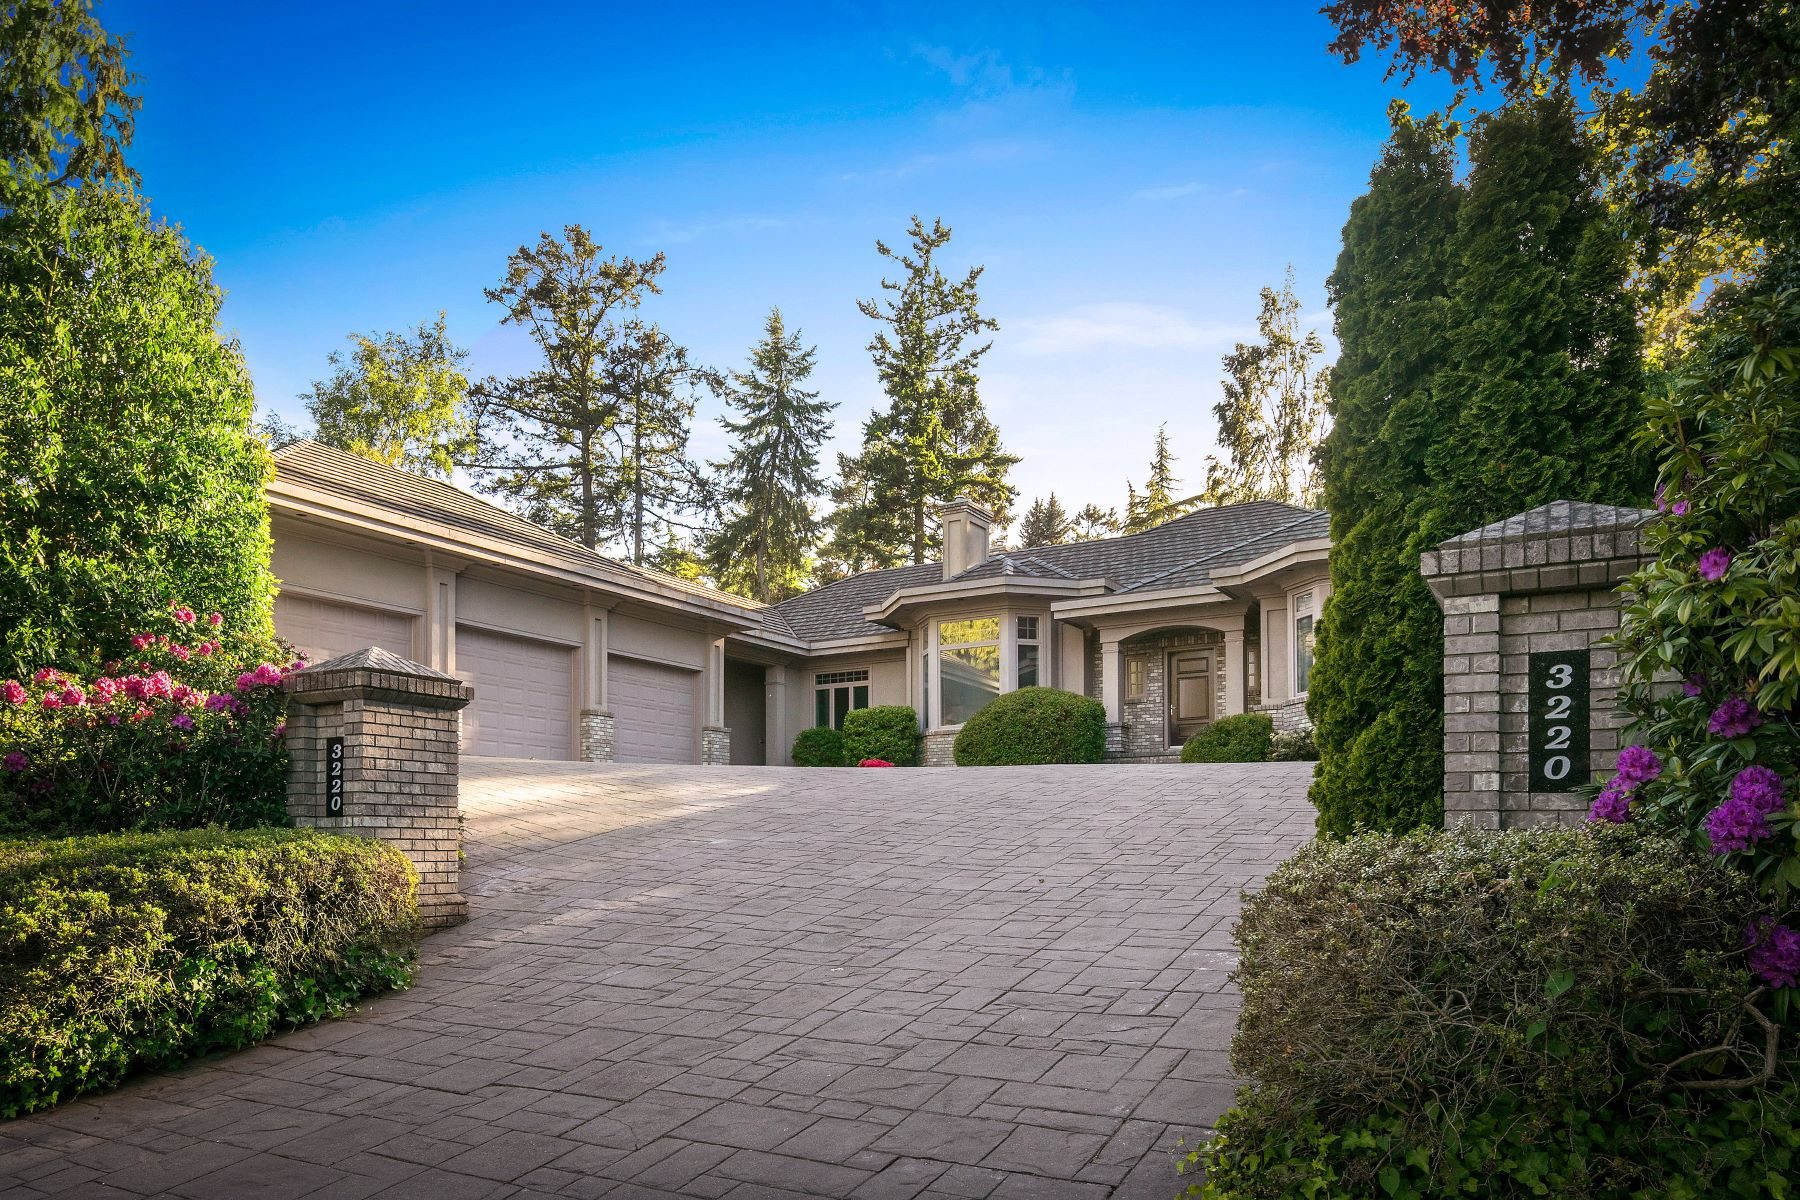 واحد منزل الأسرة للـ Sale في Stunning Custom Home 3220 Exeter Road, Victoria, British Columbia, V8R 6H6 Canada